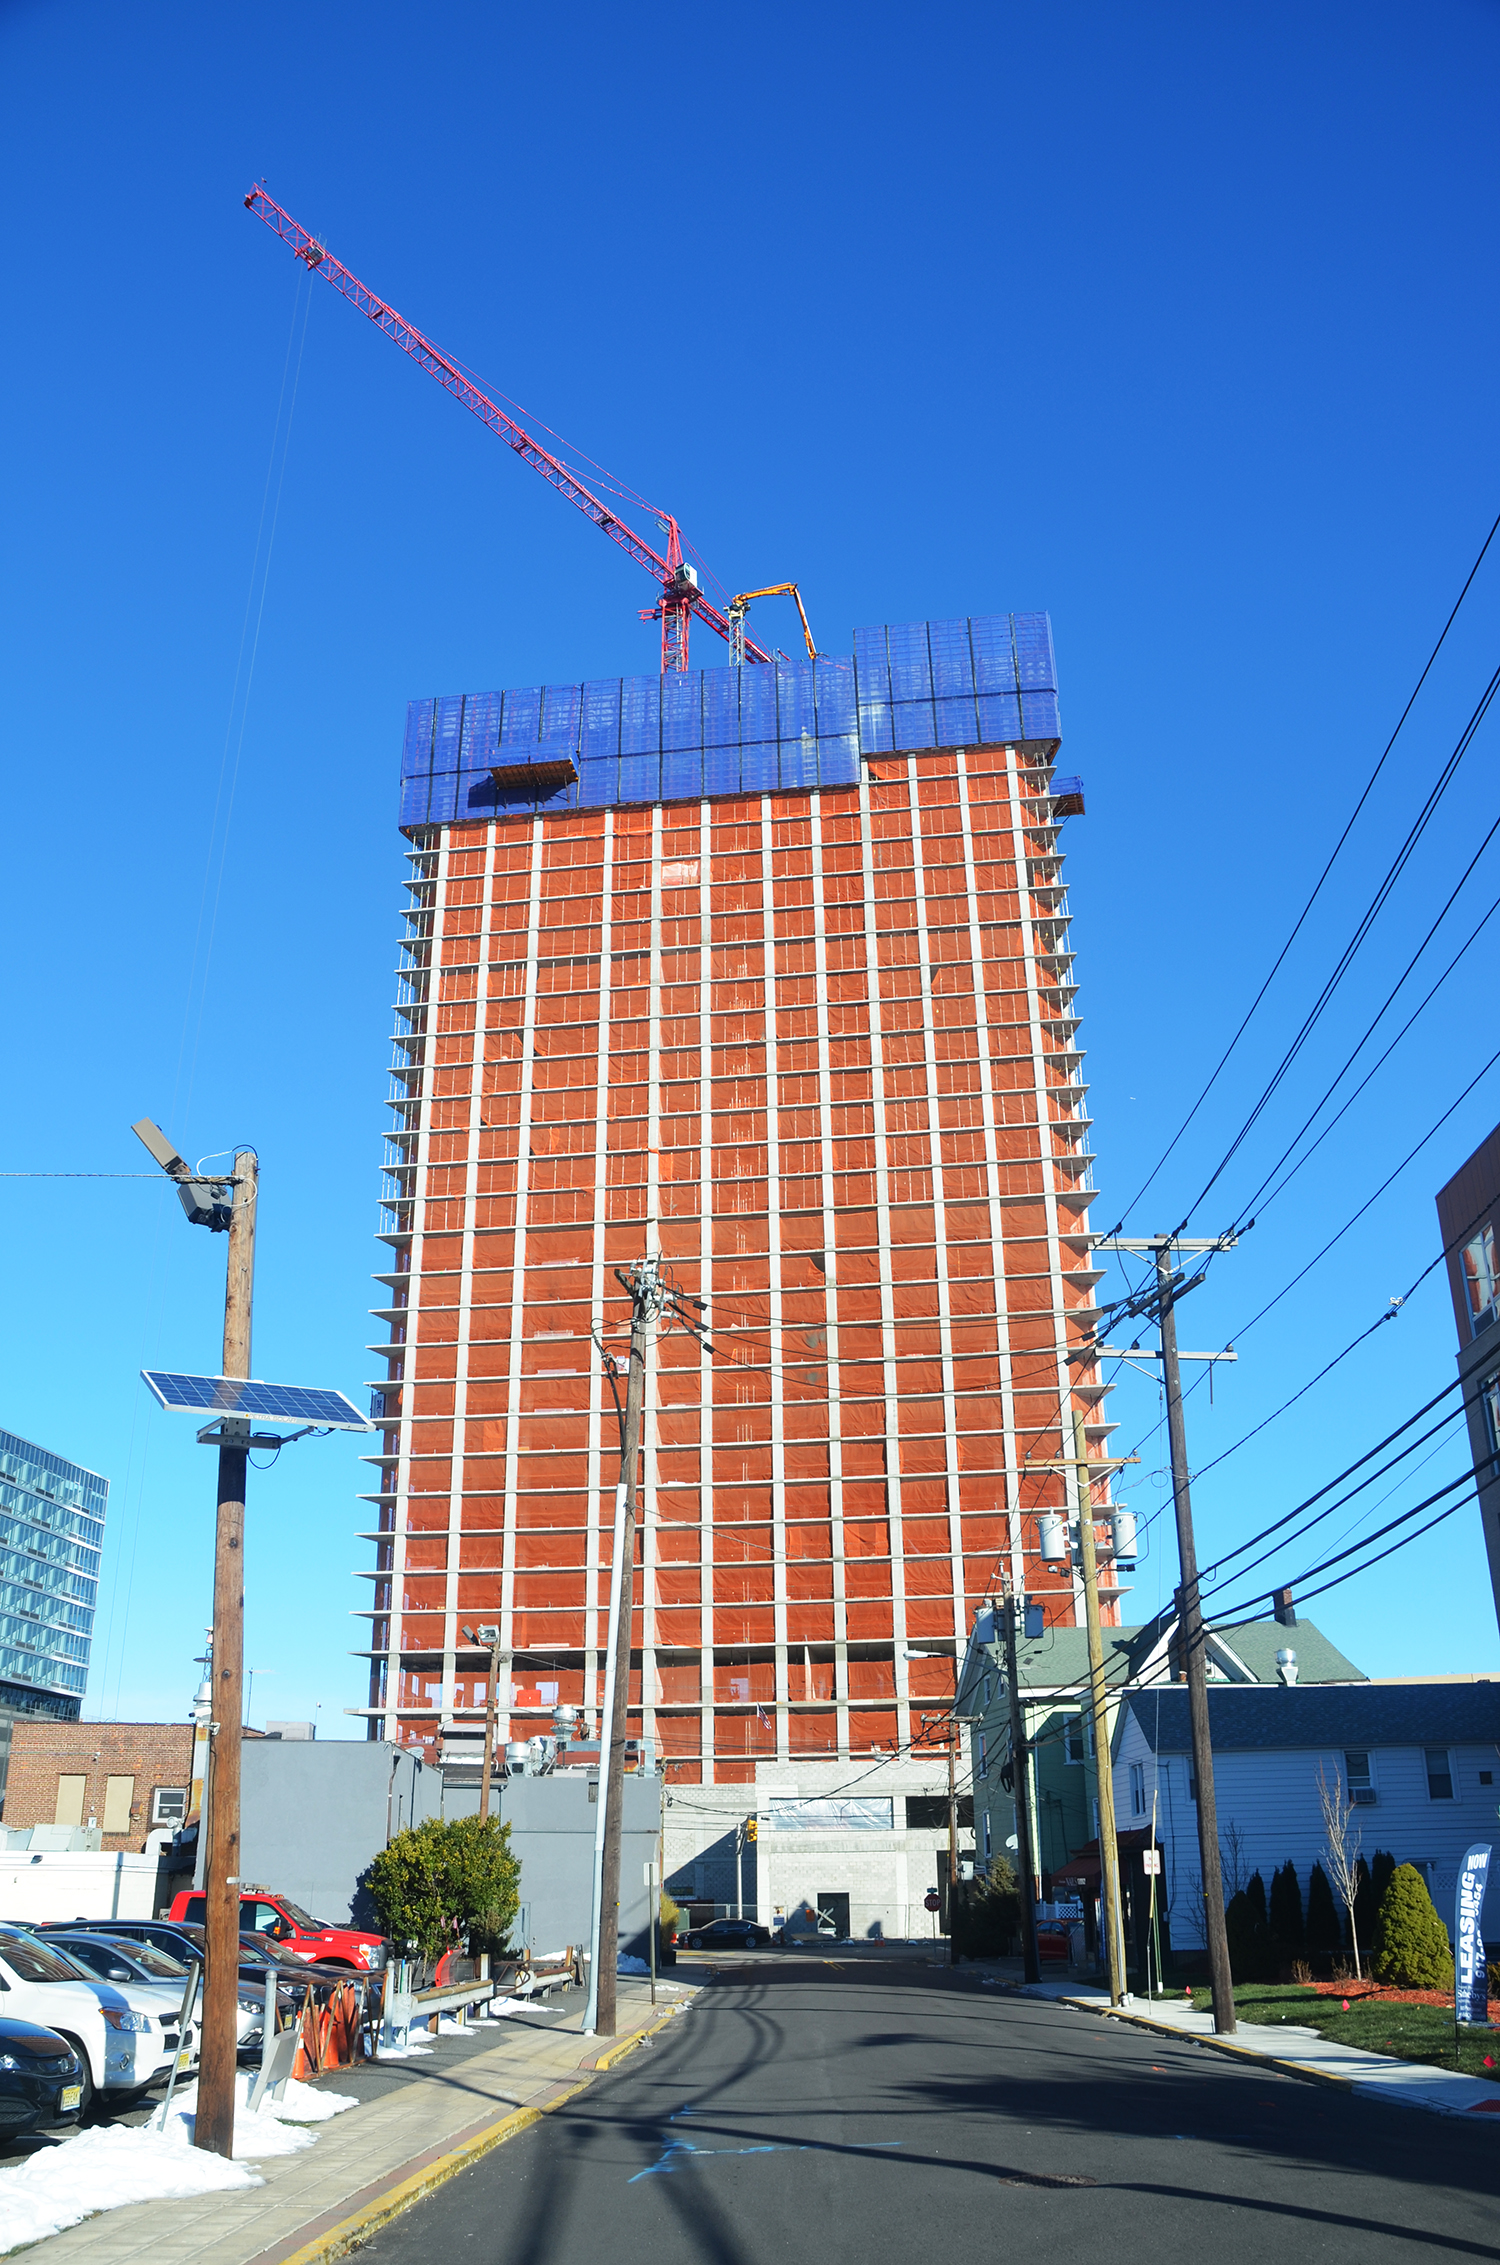 s The Modern II Continues Its Ascent in Fort Lee s Skyline